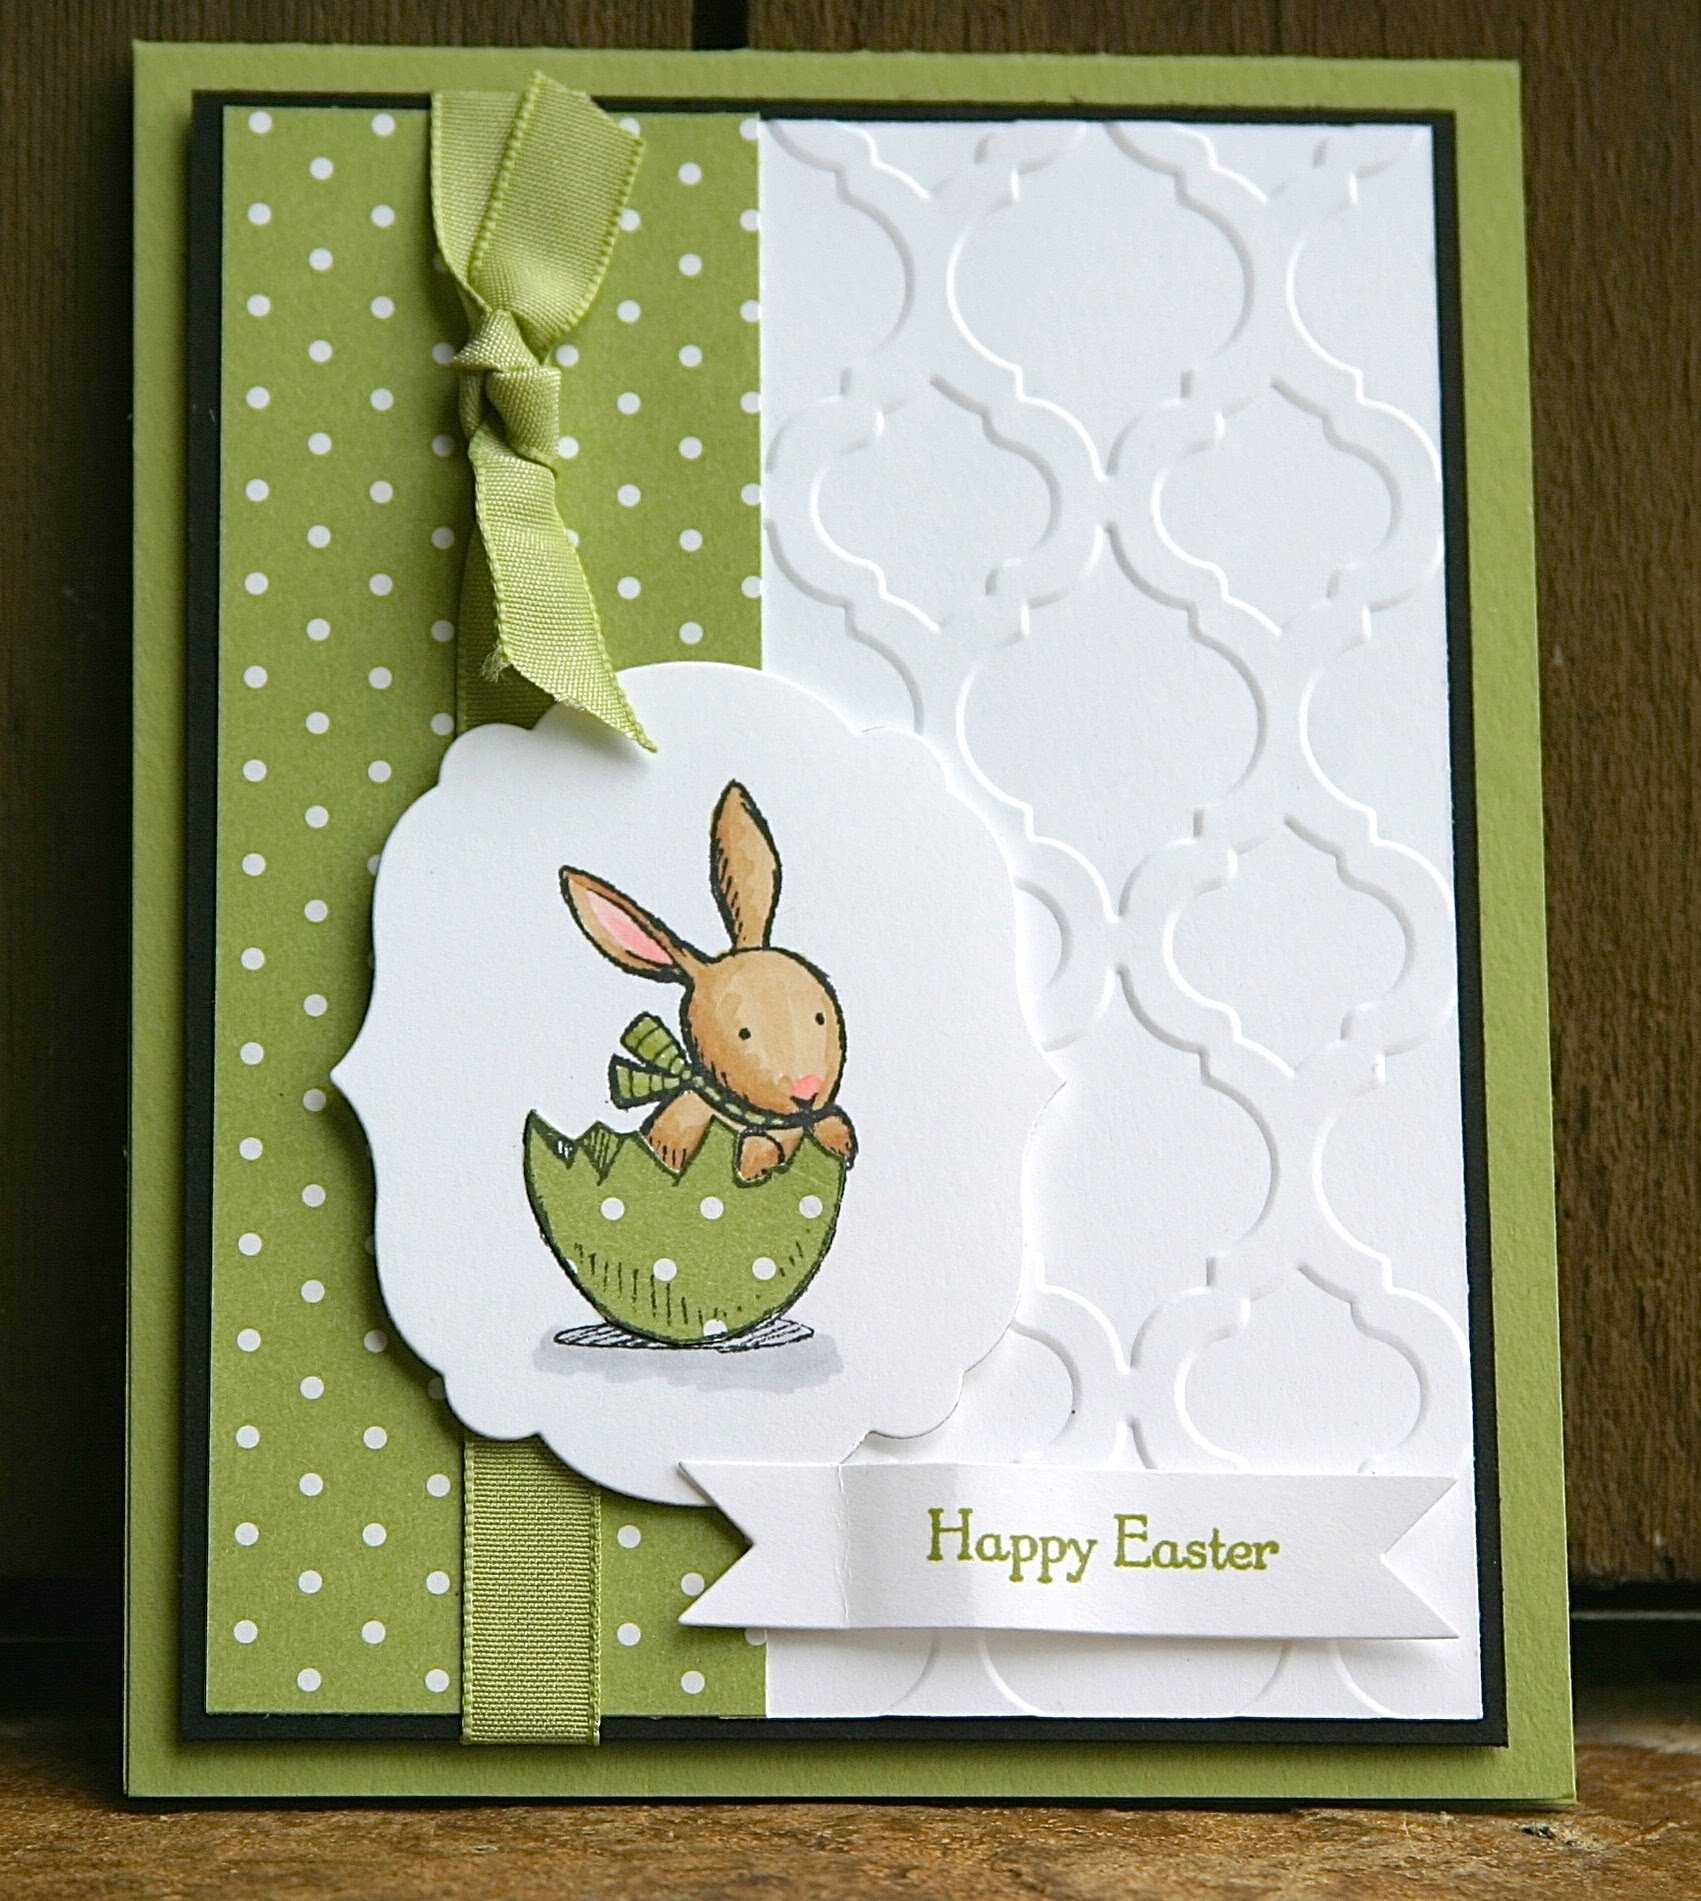 Easter Card Template Ks2 Pop Up Easter Card Bw 8.5×11 For Easter Card Template Ks2